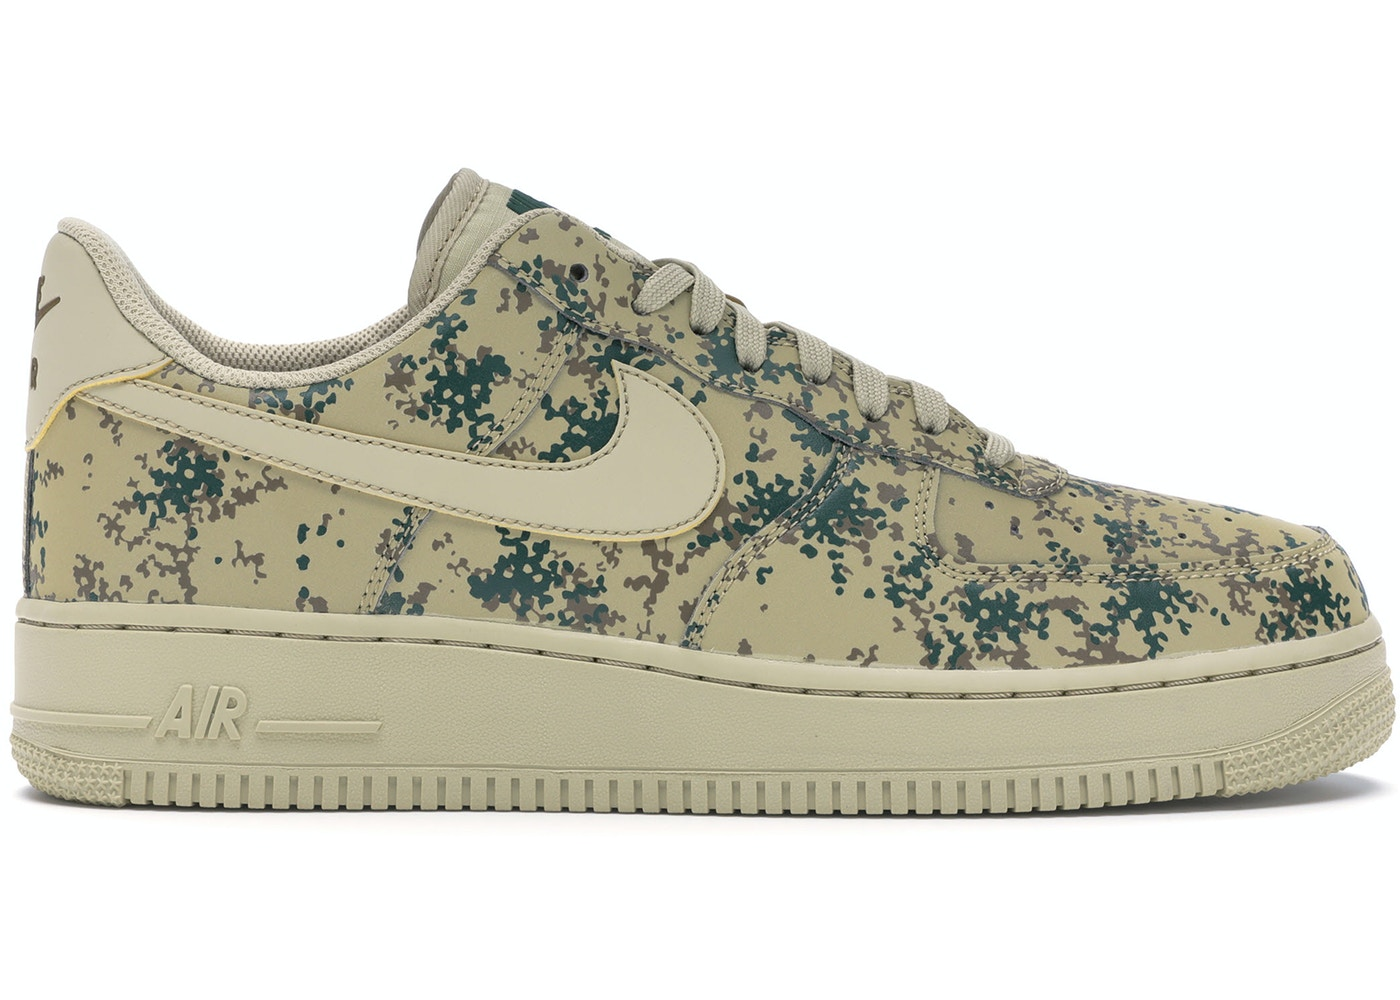 best deals on aliexpress details for Air Force 1 Low Desert Camo Team Gold